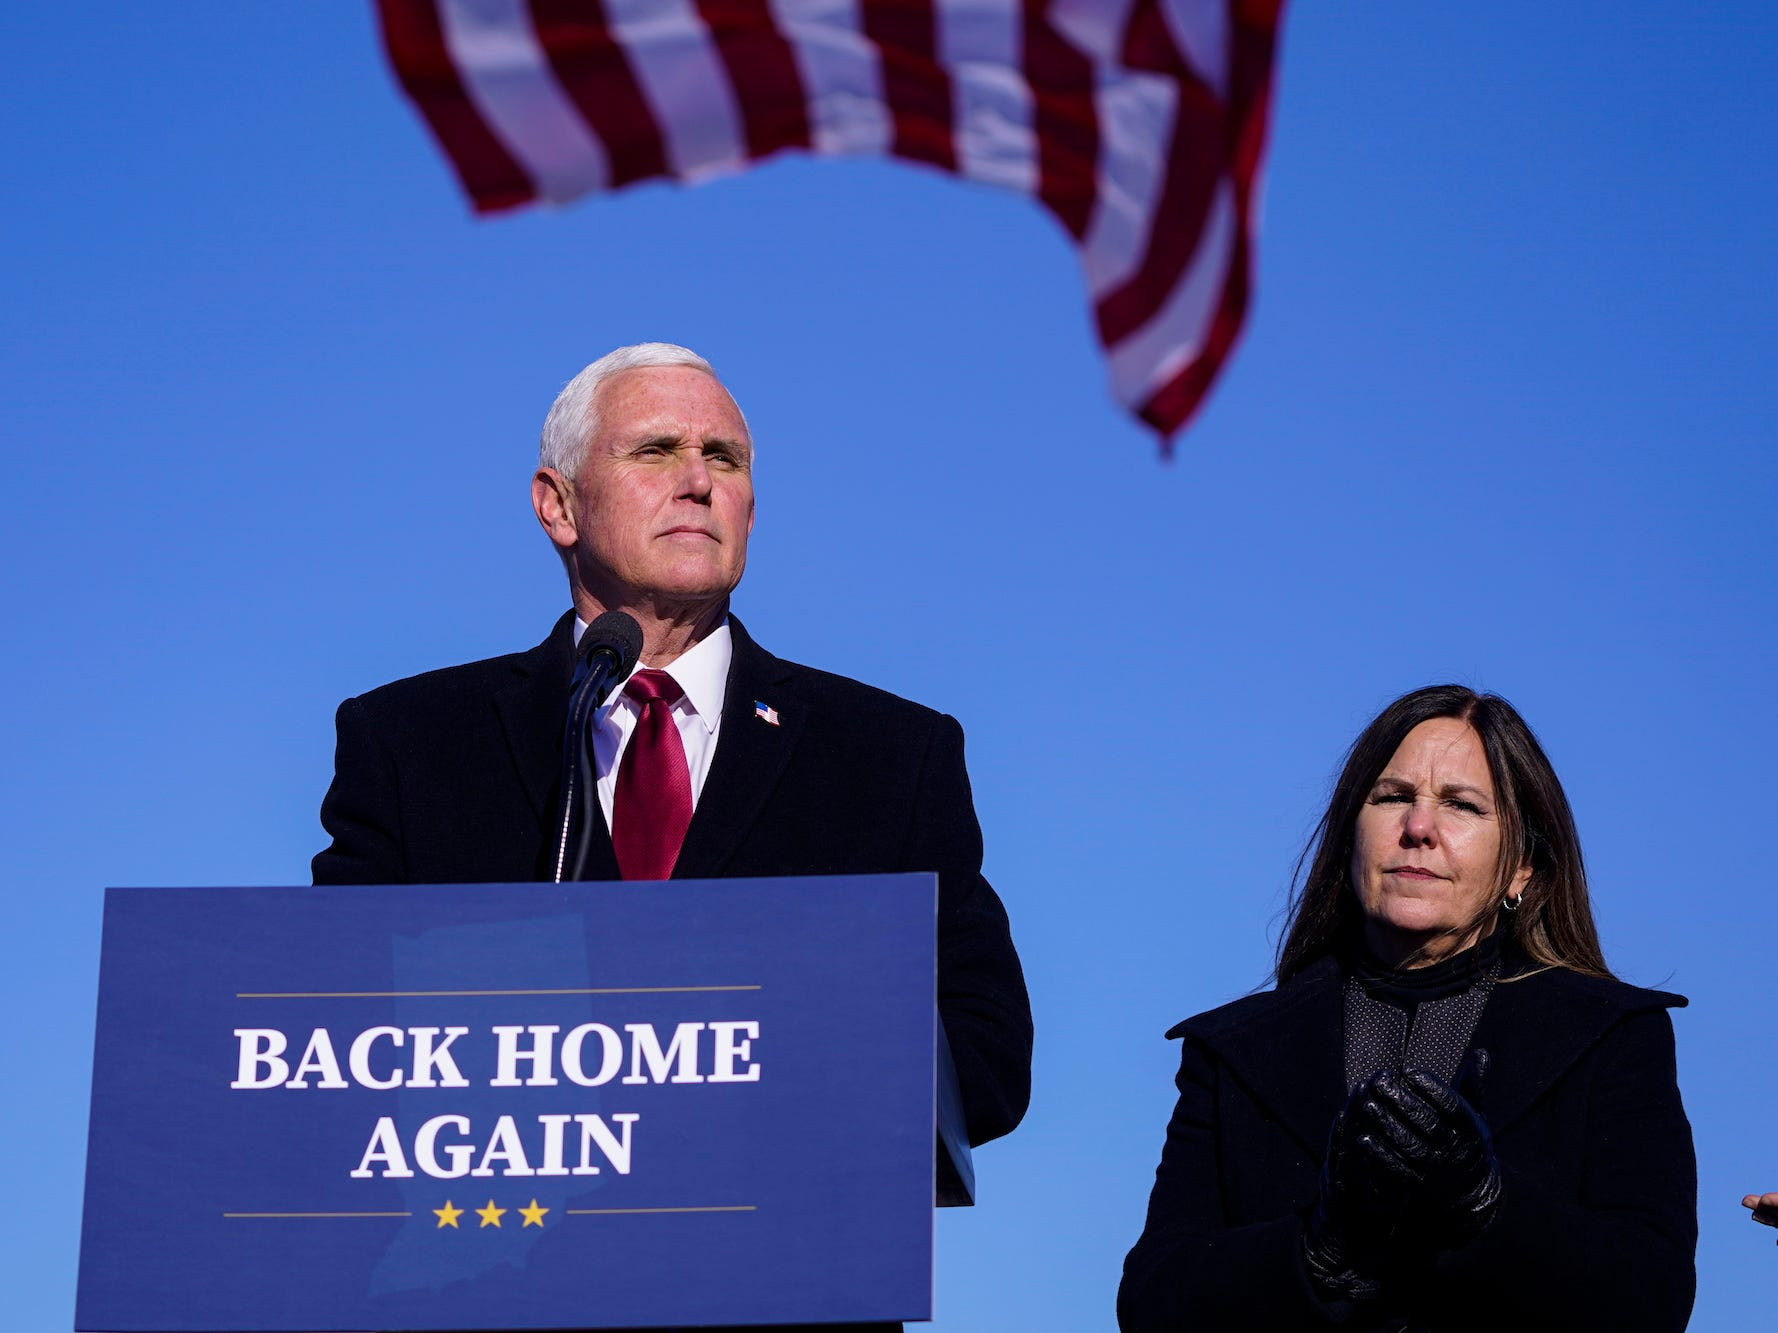 Mike and Karen Pence are homeless and appear as if couch surfing their come by Indiana